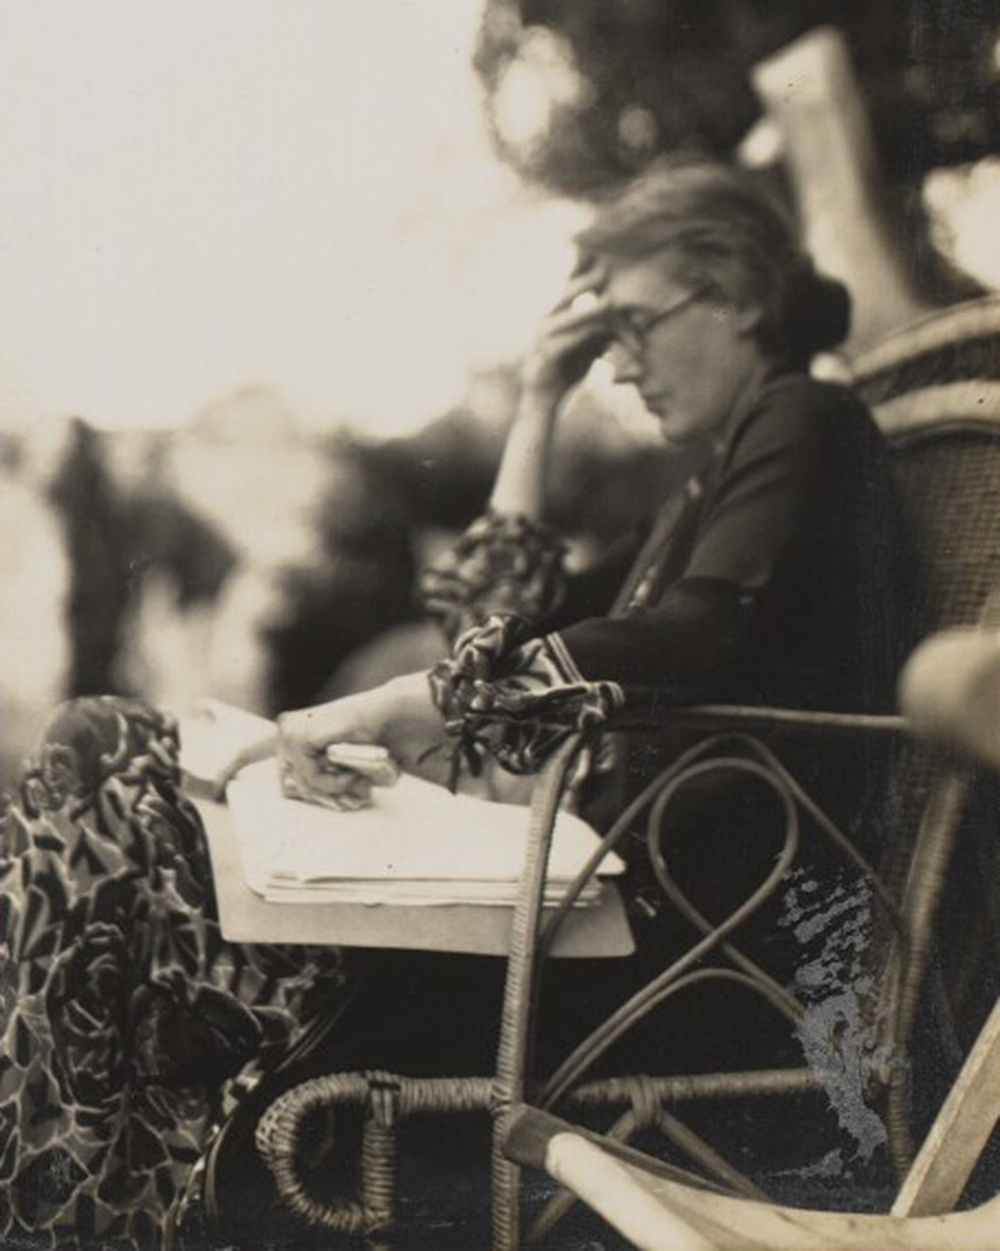 Virginia Woolf, 1926. Photograph by Ottoline Morrell. © National Portrait Gallery, London.